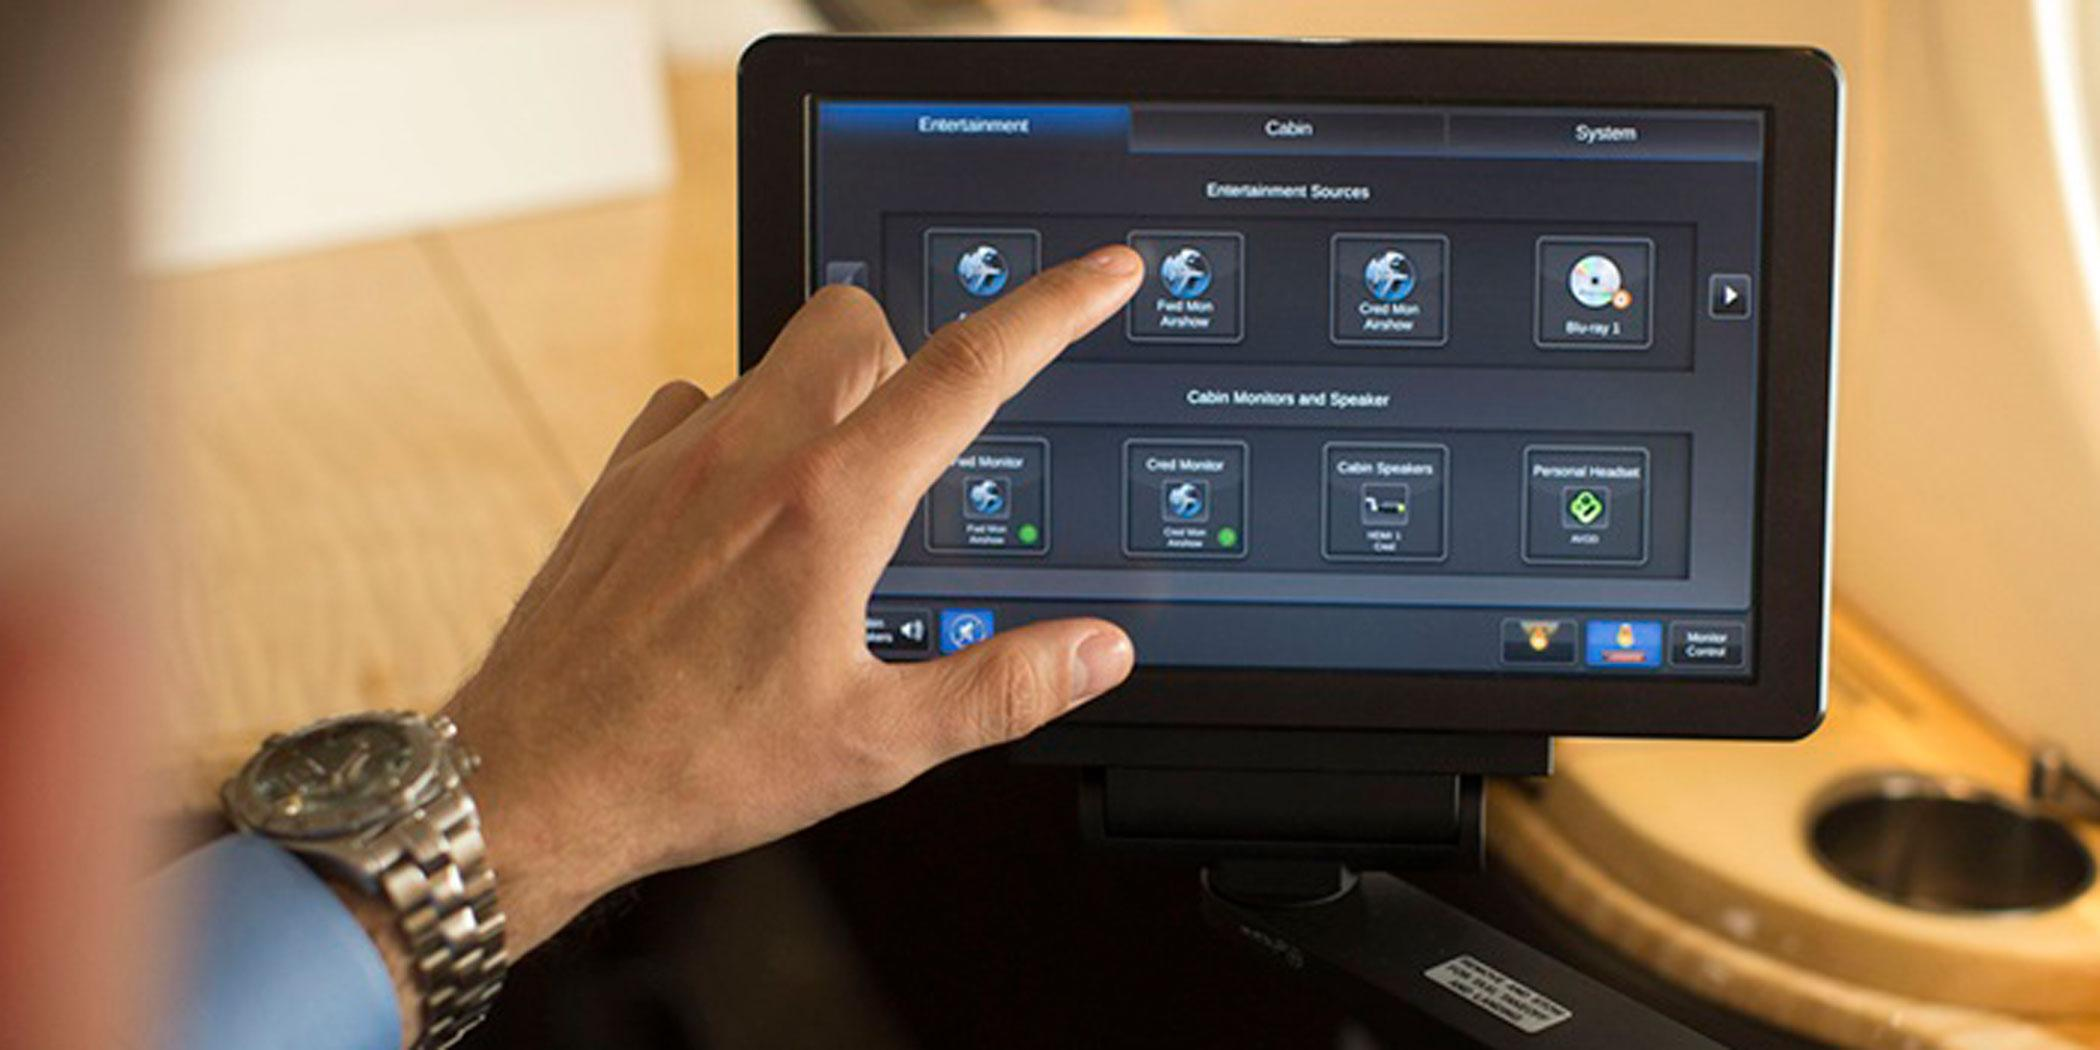 Rockwell Collins cabin management system